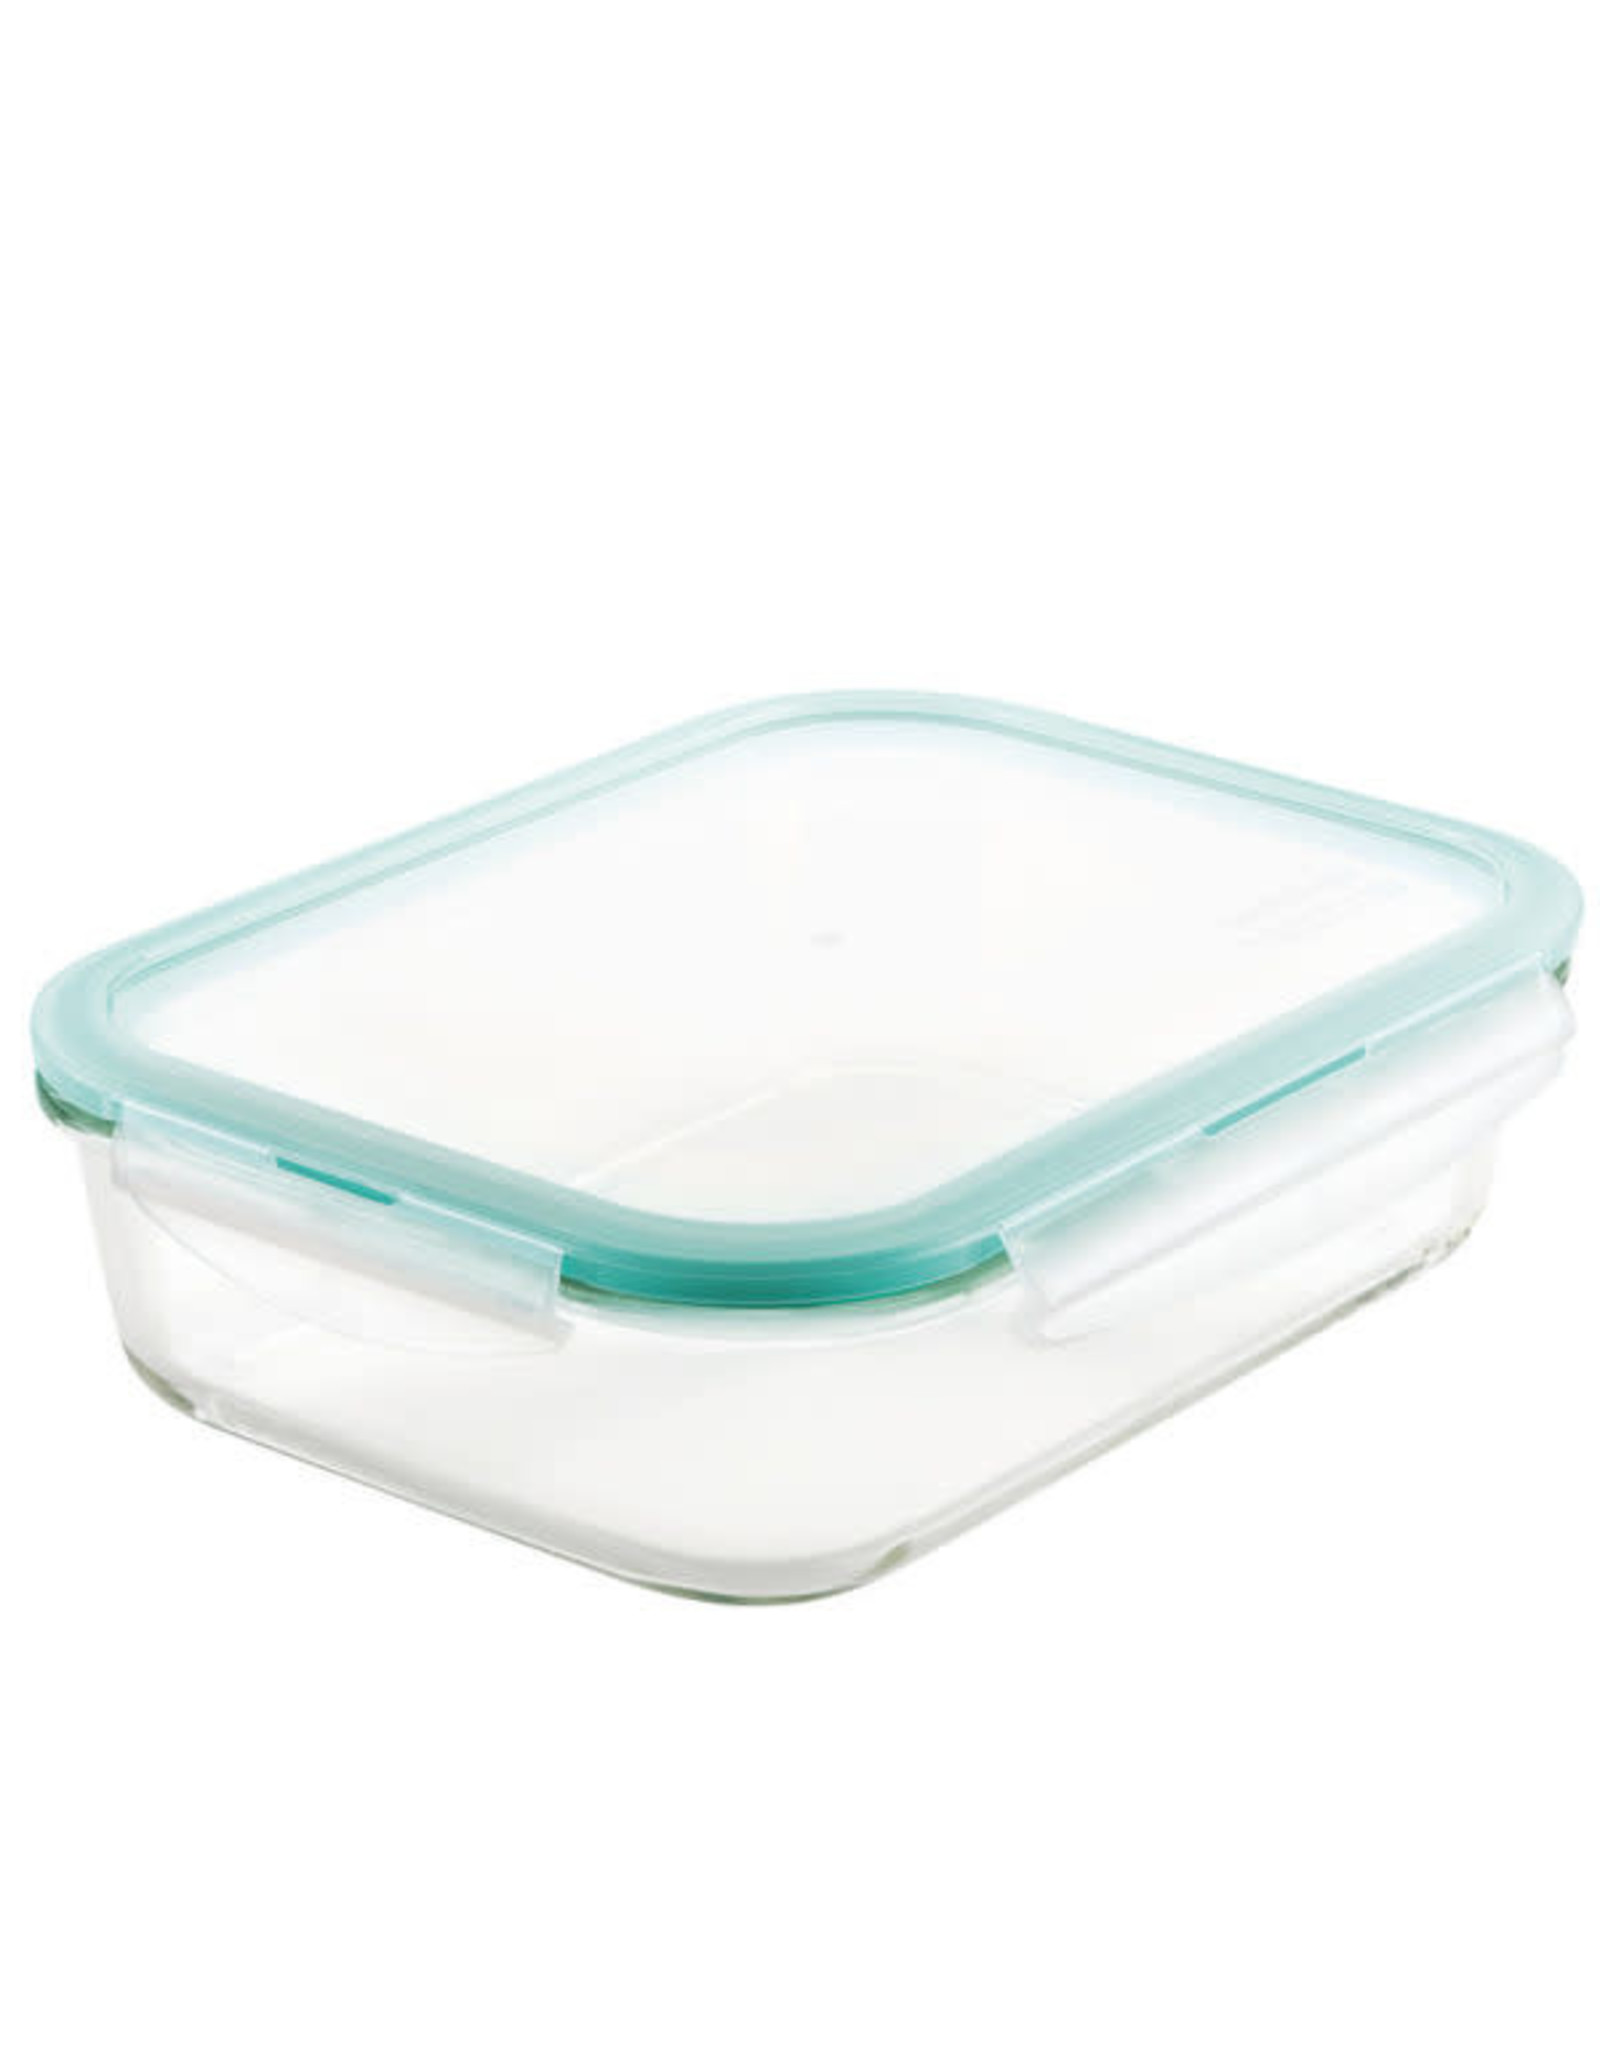 1.6L Glass Rectangular Food Storage Container